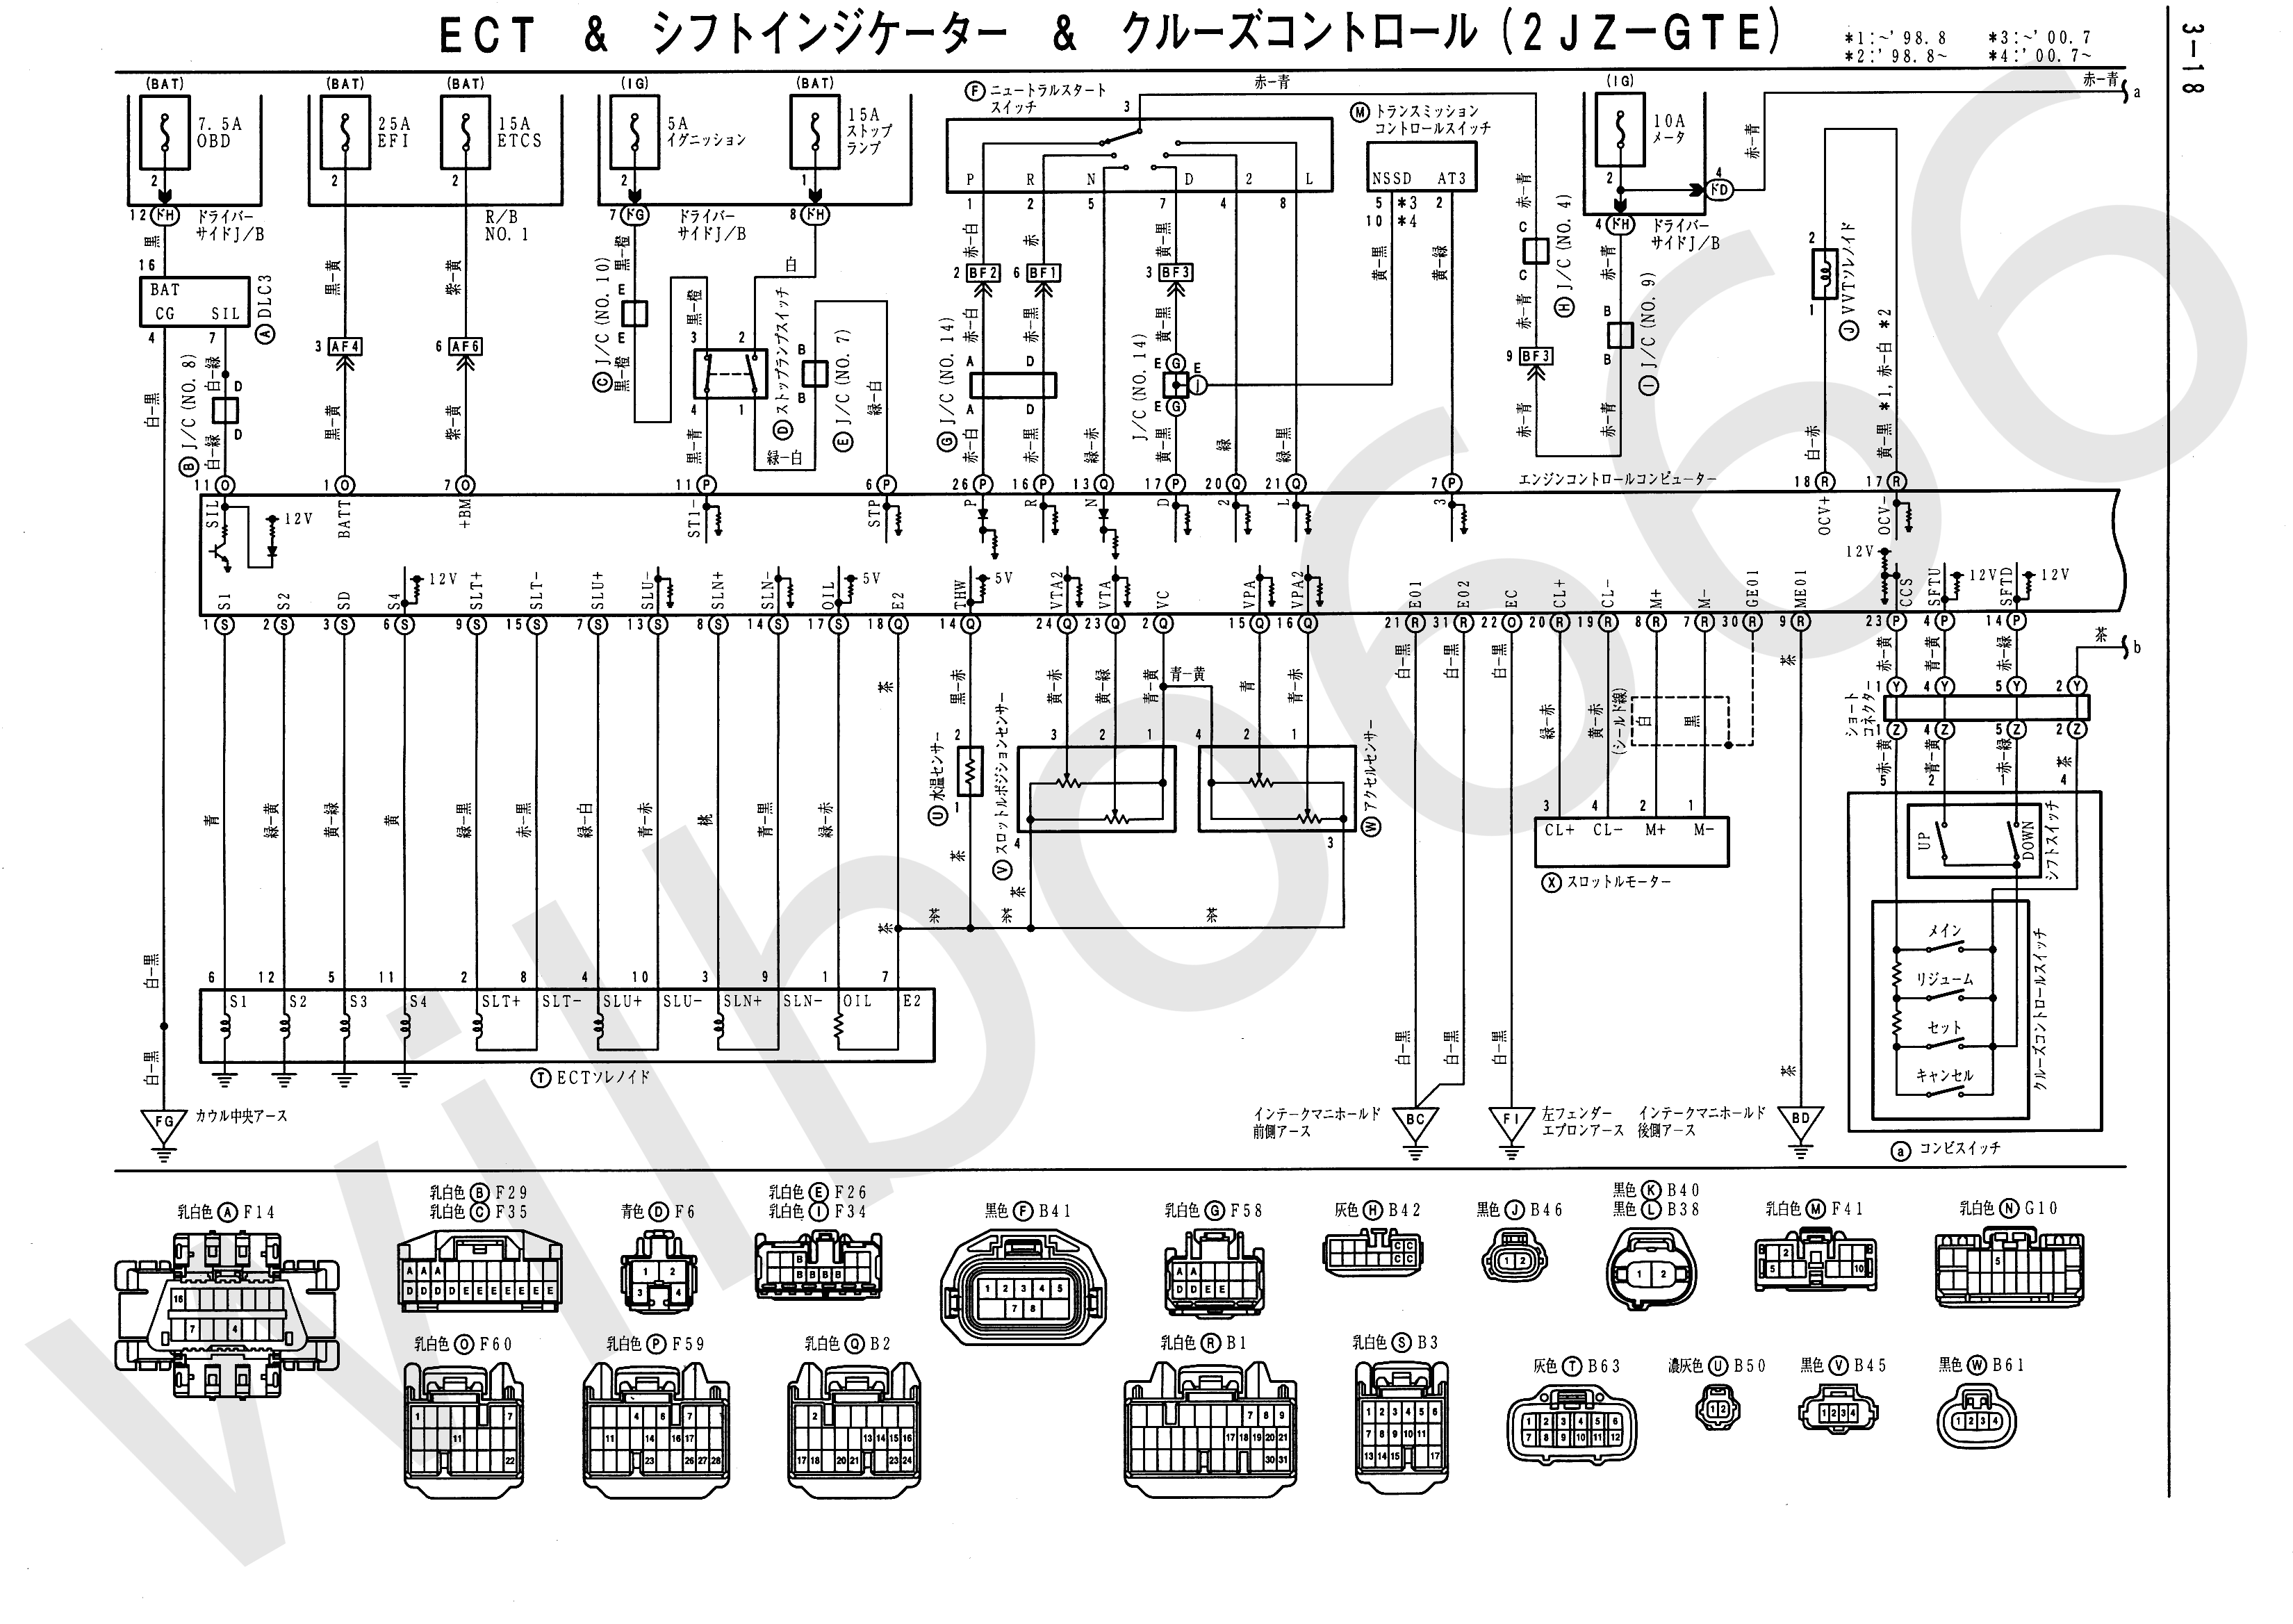 gravely wiring diagram 1jz vvti ecu wiring harness 1jz wiring diagrams 2jz wiring harness wiring diagram and hernes